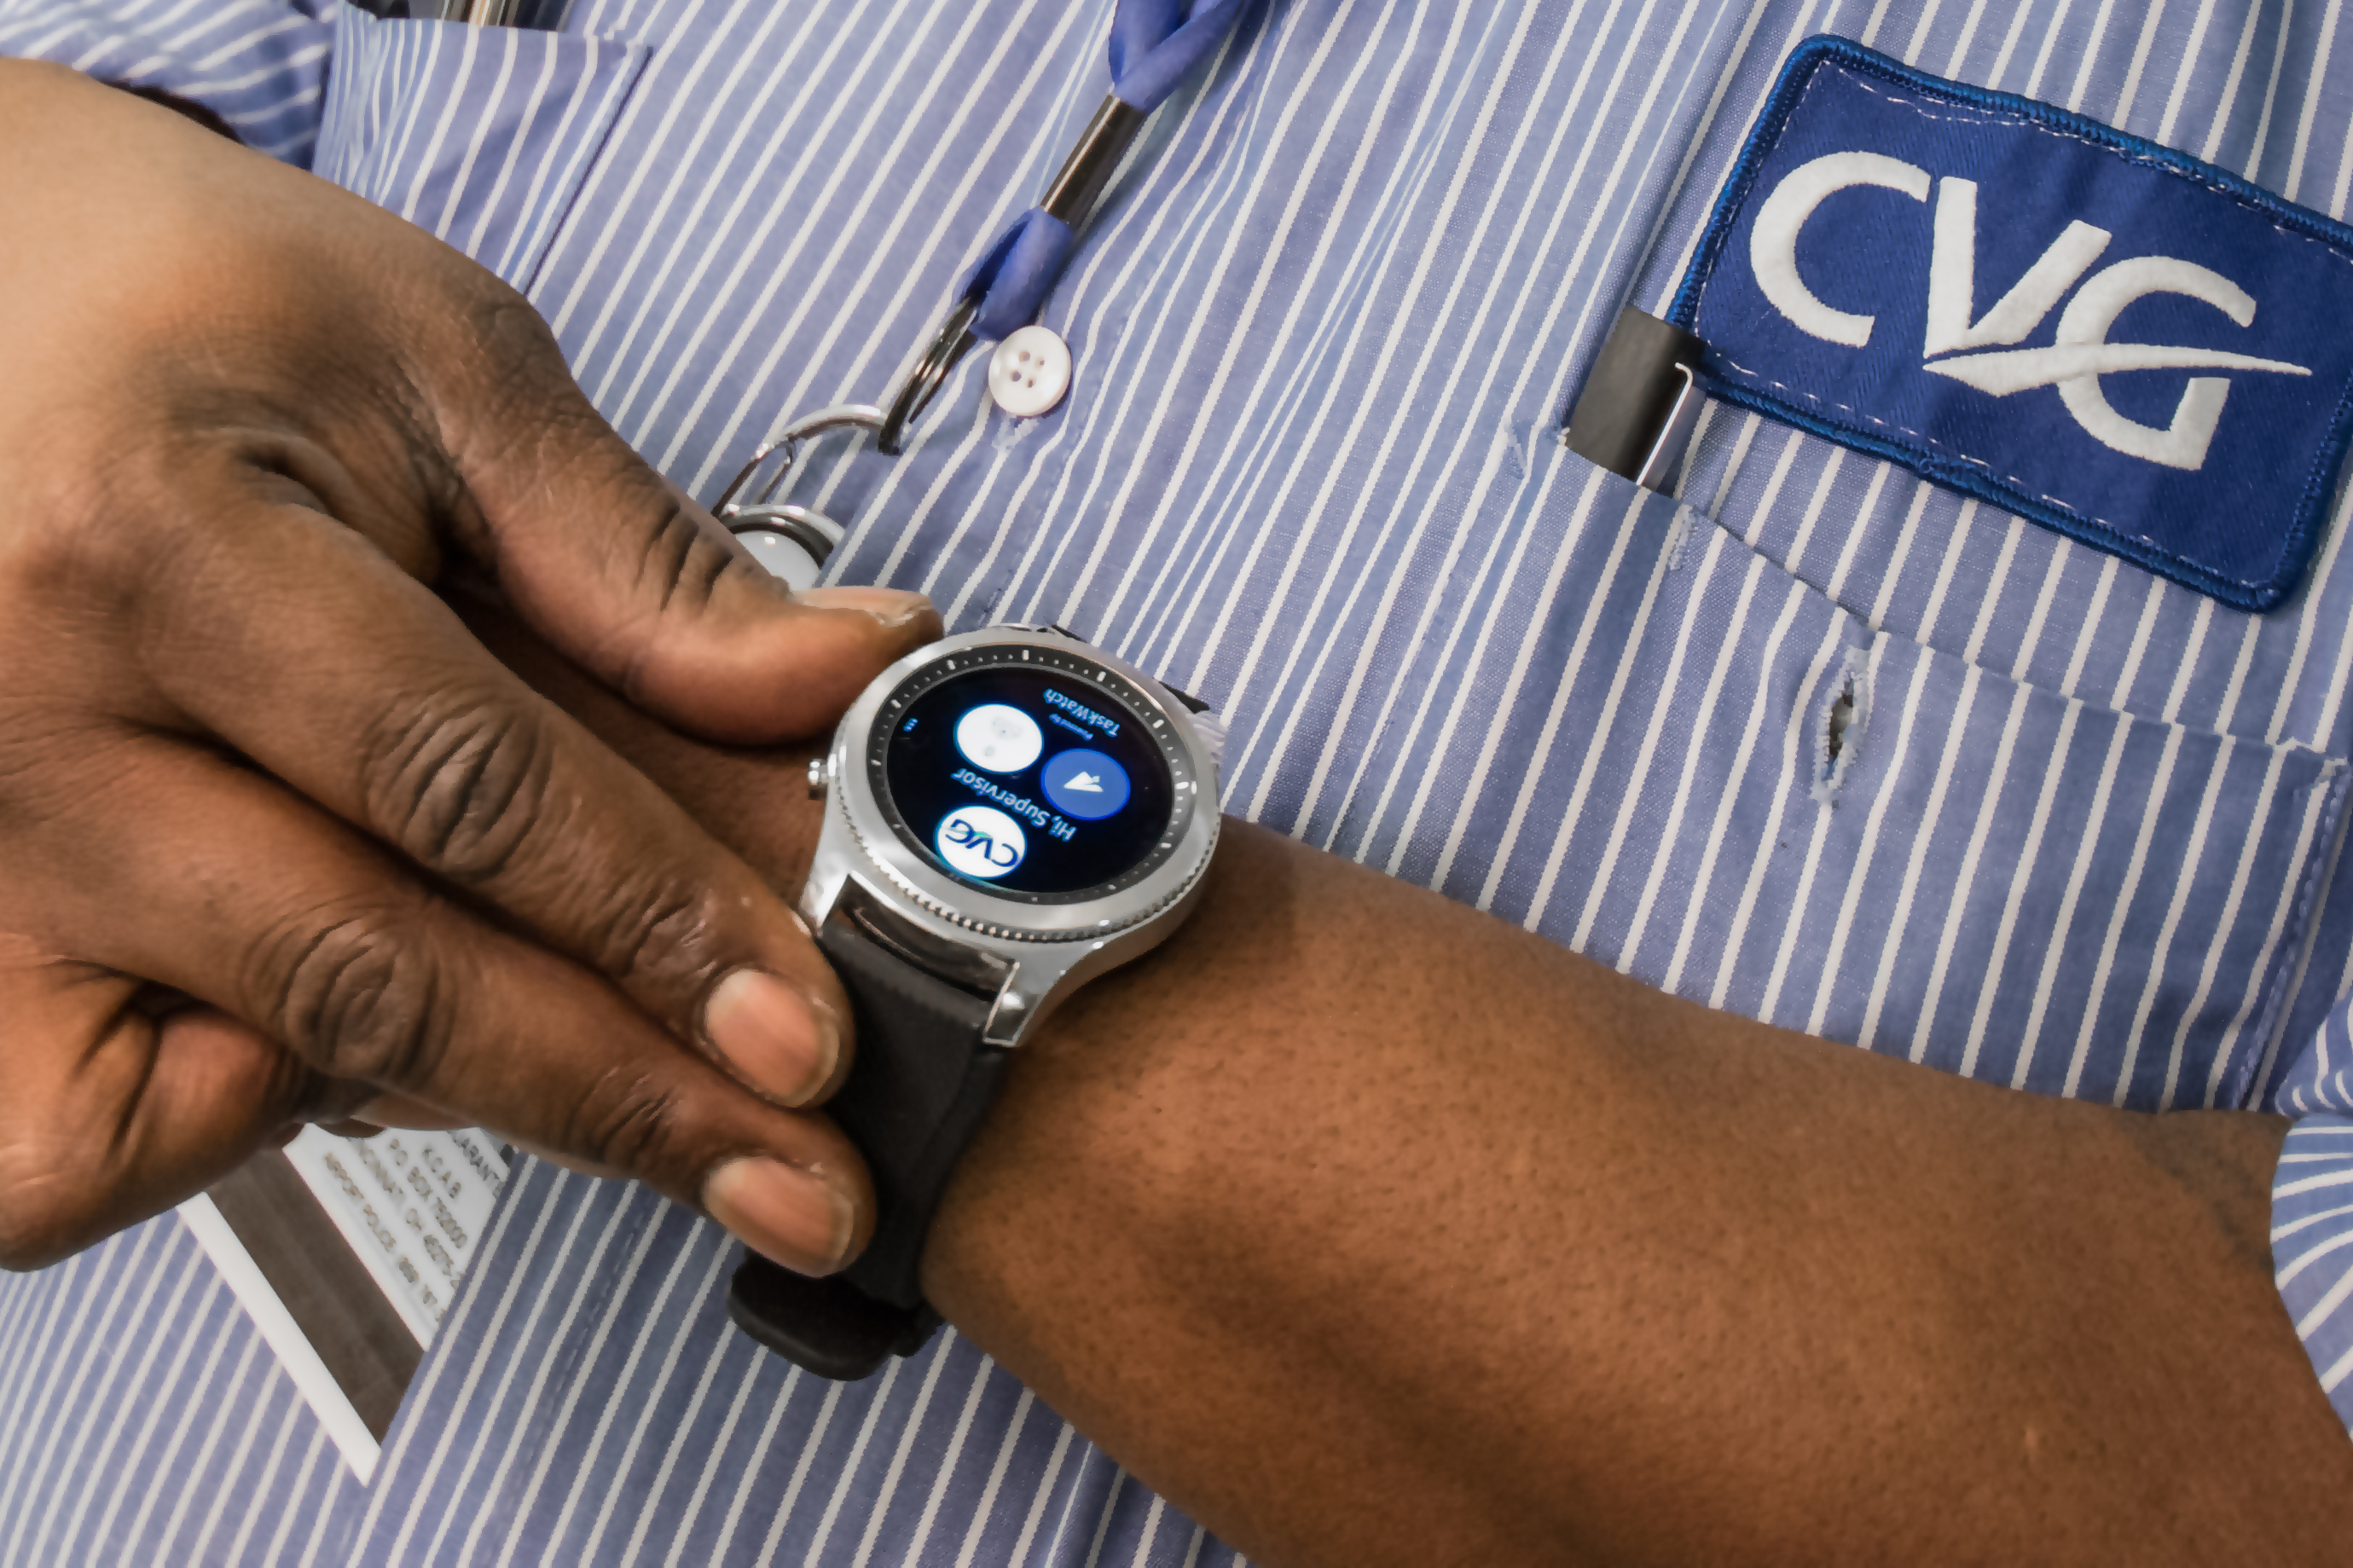 Samsung and Hipaax Accelerate Wearables in the Workplace